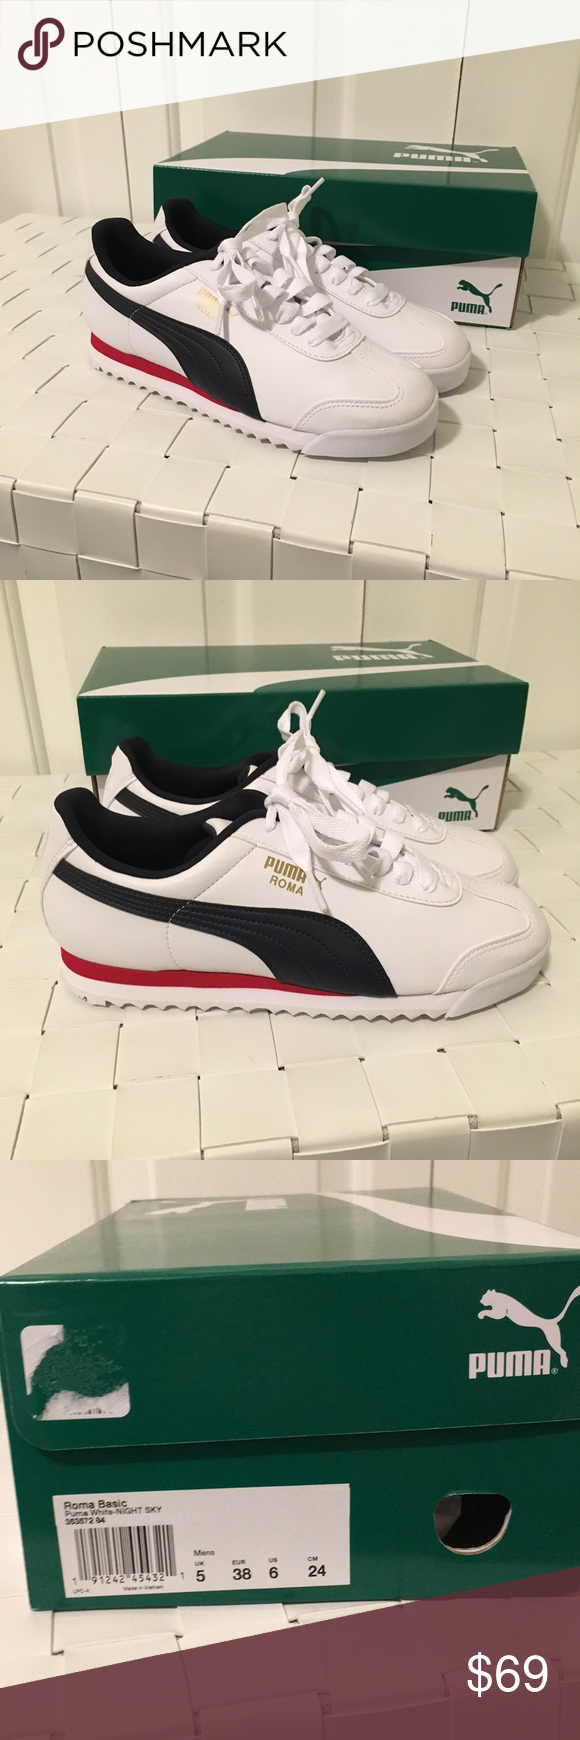 c19449239db NEW puma Roma basic sneakers Brand new in box Size 7.5 in women s size 6 in  men s Navy red and white color Beautiful sneakers Never worn before Puma  Shoes ...